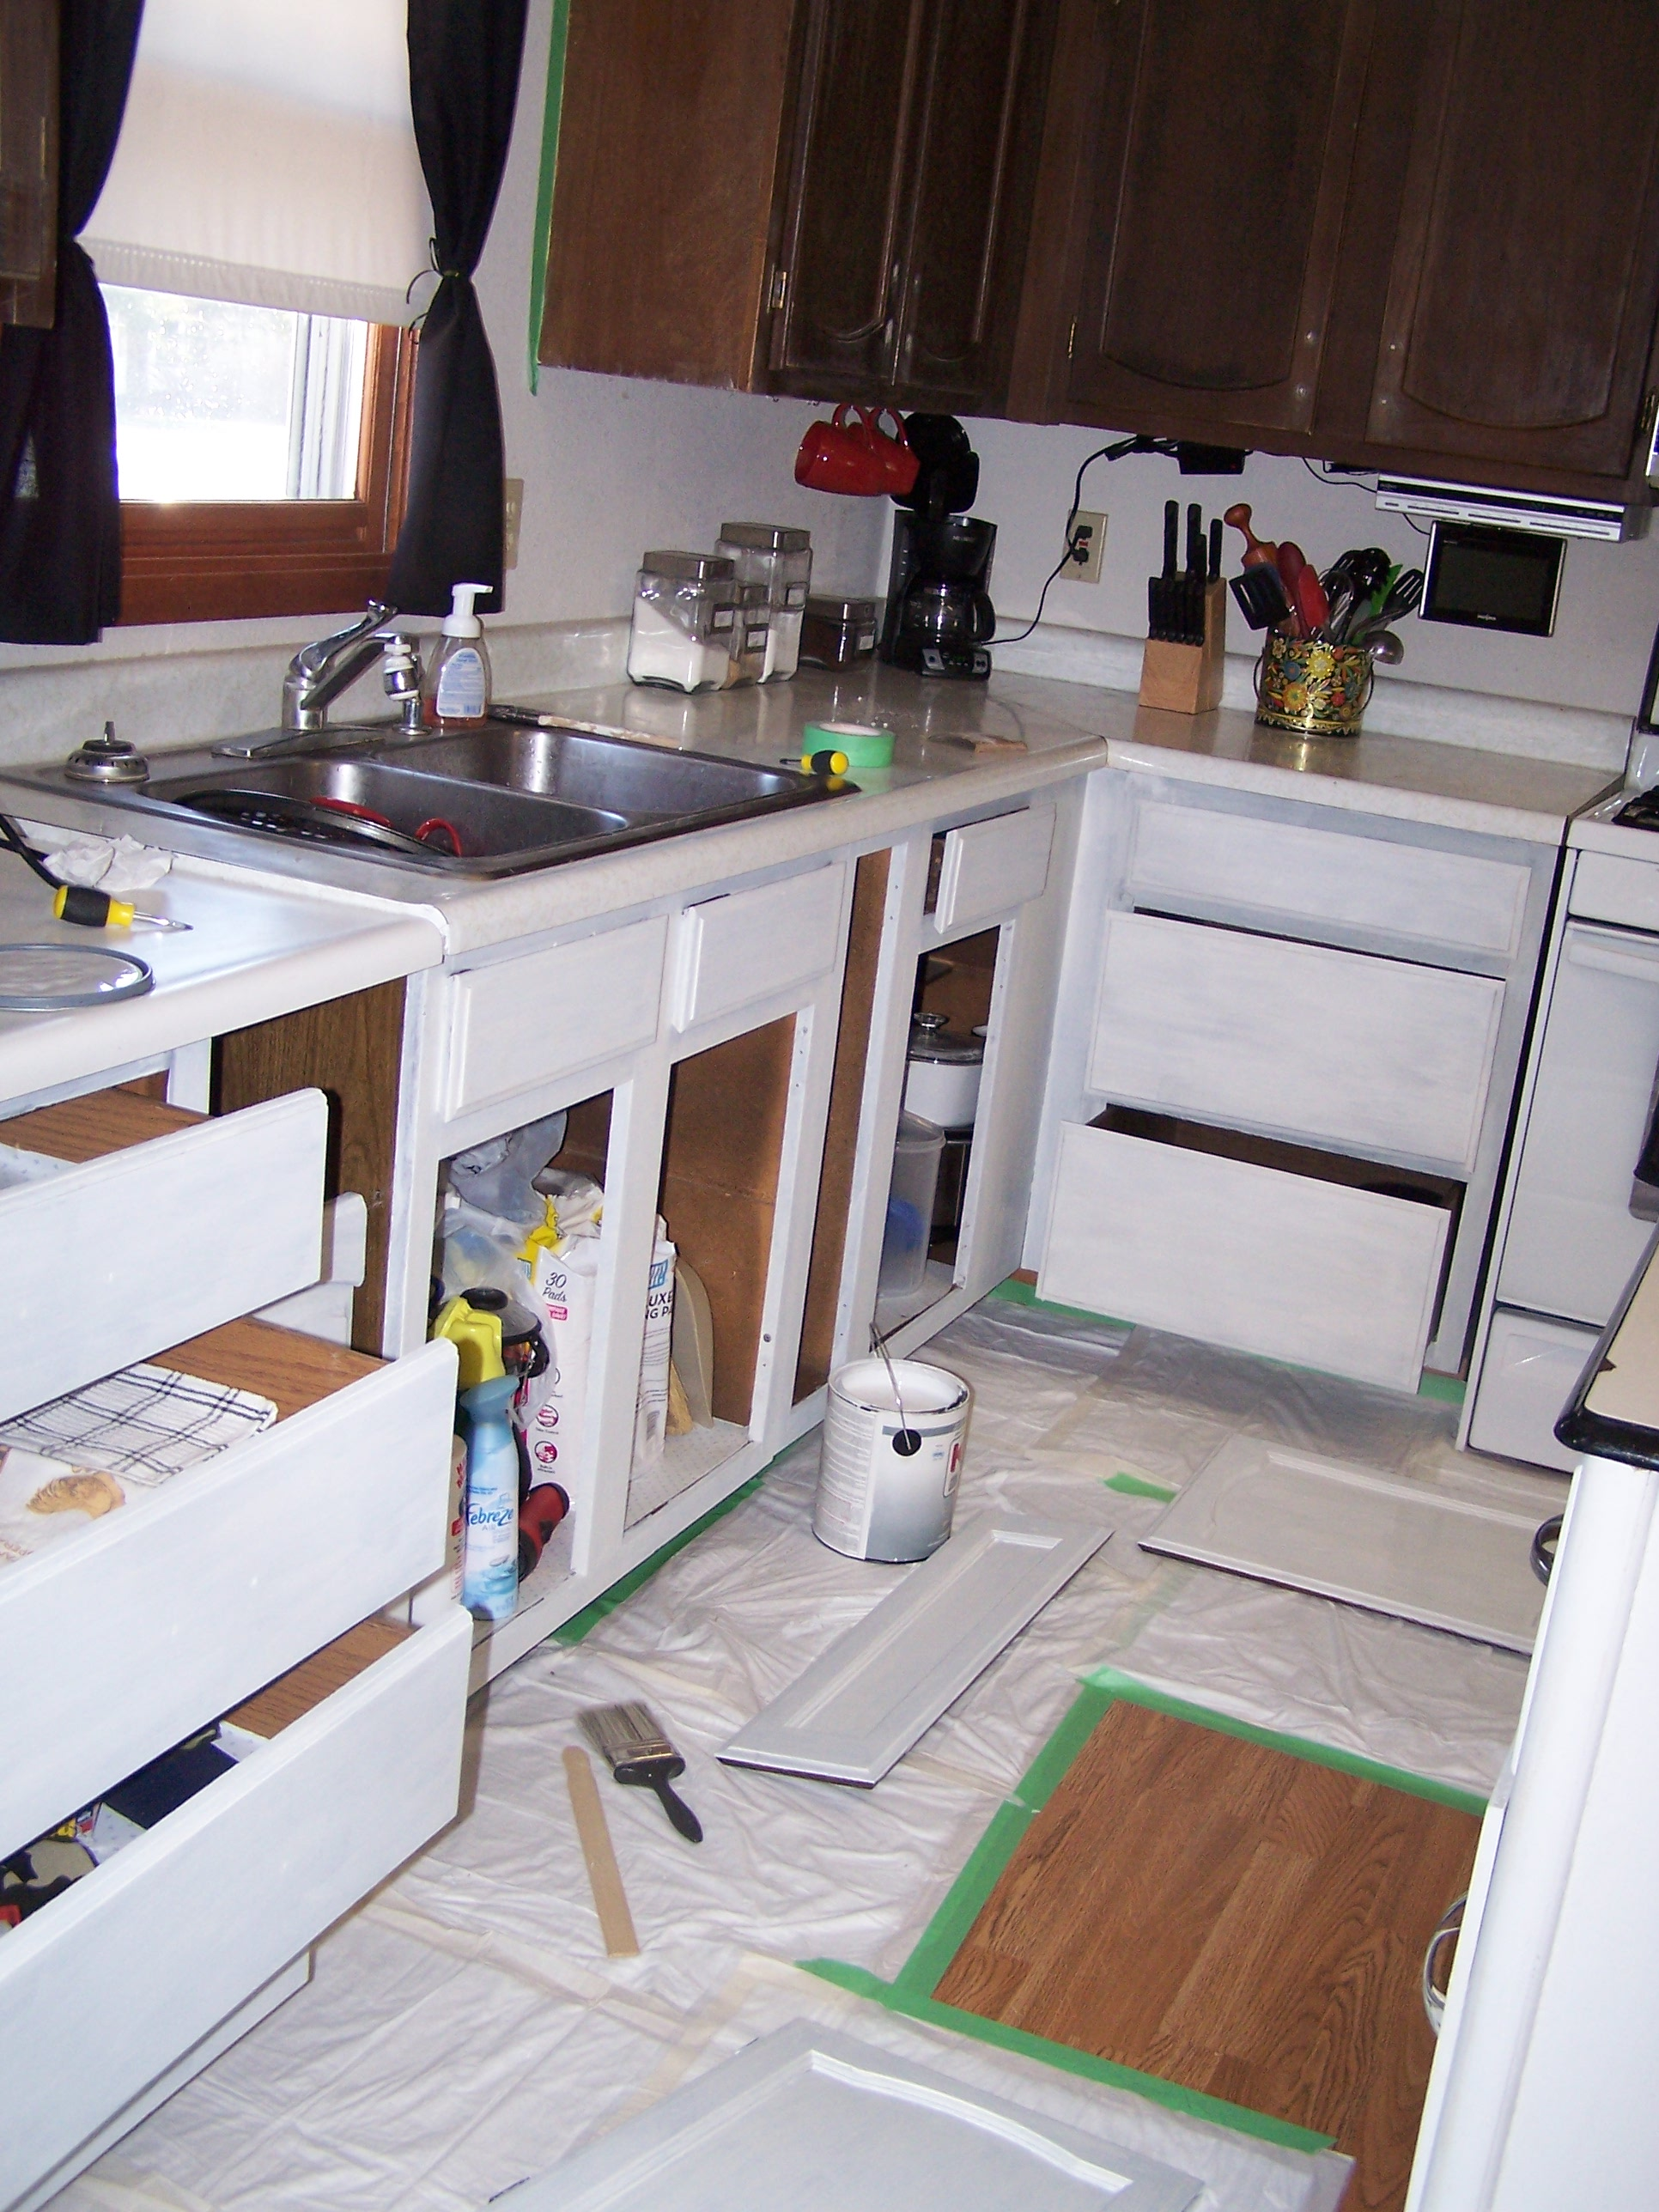 What Kind Of Paint To Use On Kitchen Cabinets For Pliage Papiers Progress The Kitchen Make Mine Eclectic